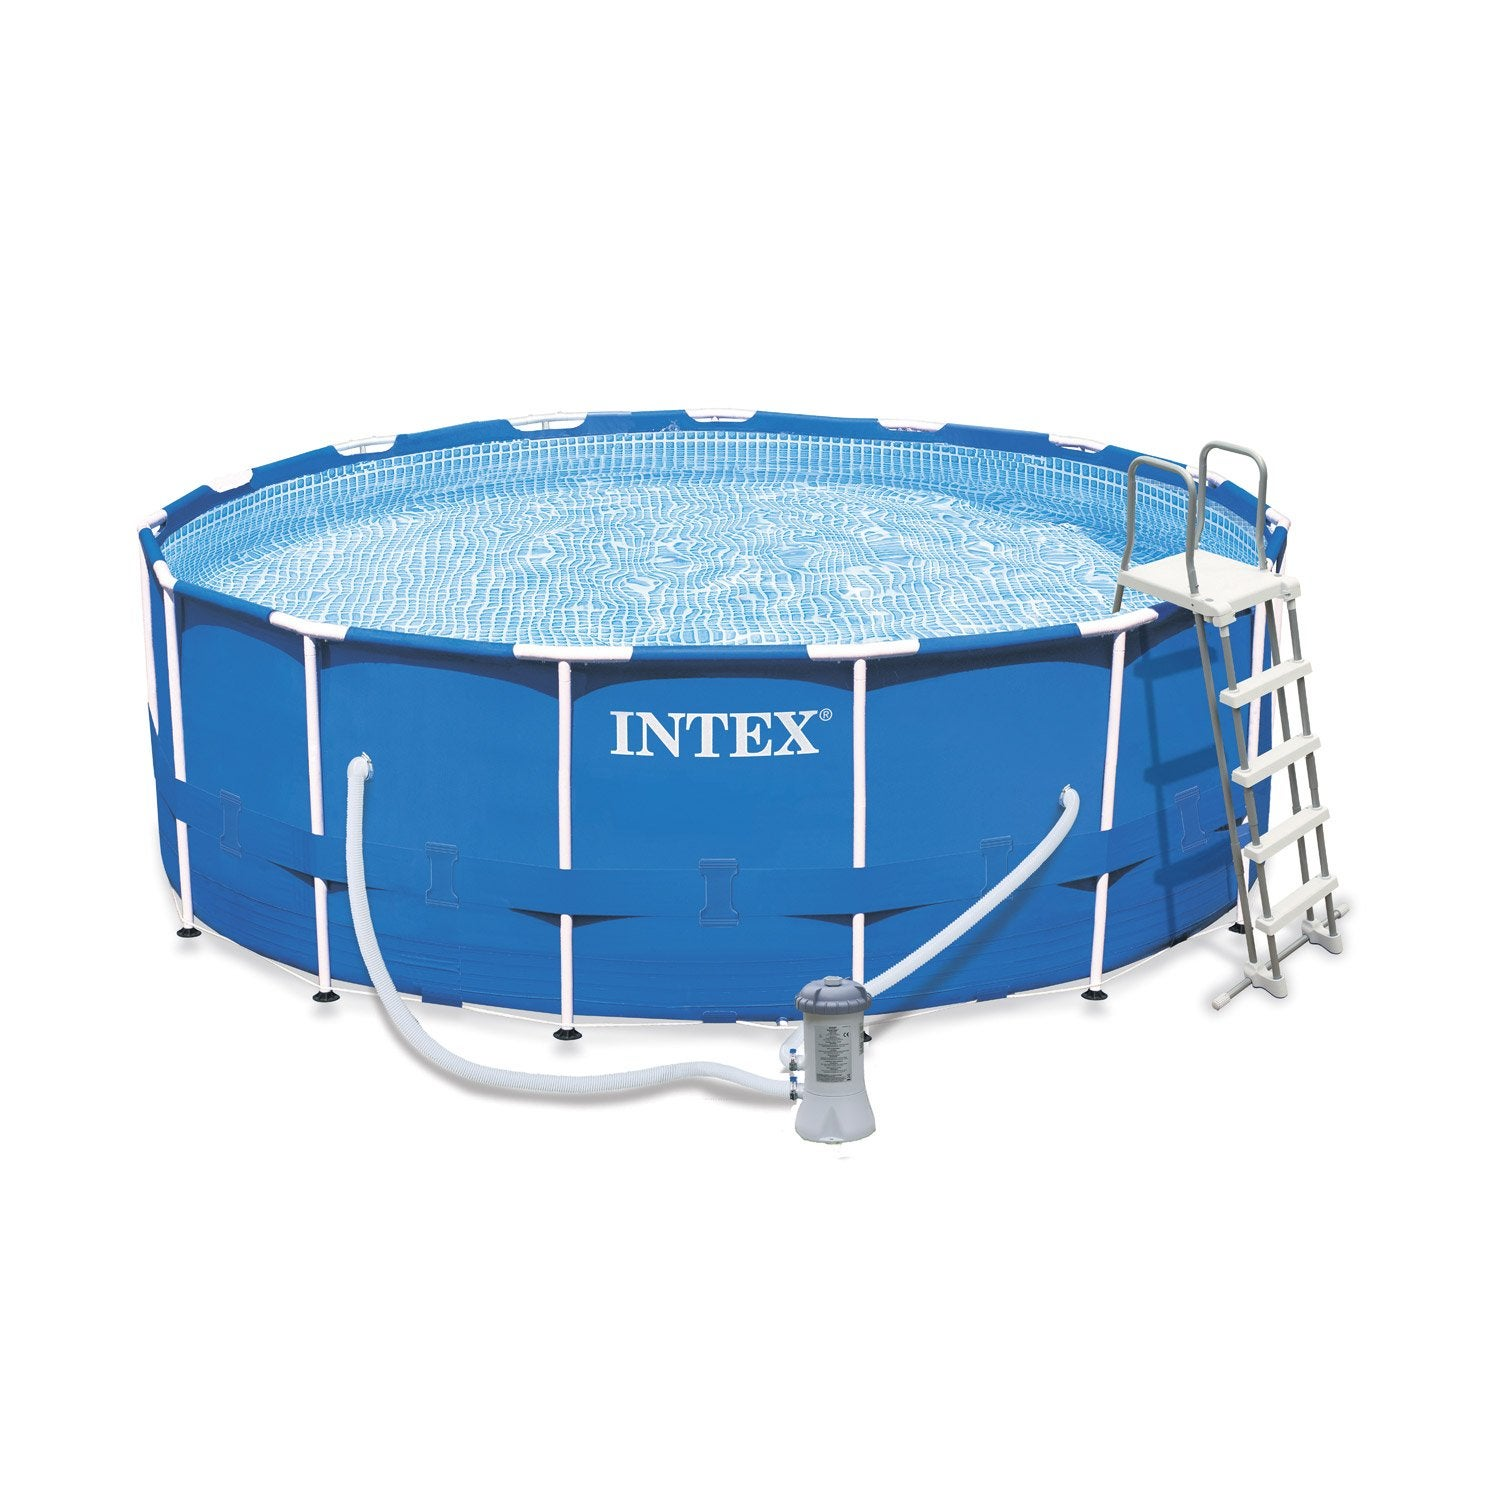 Piscine hors sol autoportante tubulaire metal frame intex diam x h m leroy merlin for Piscine hors sol metal